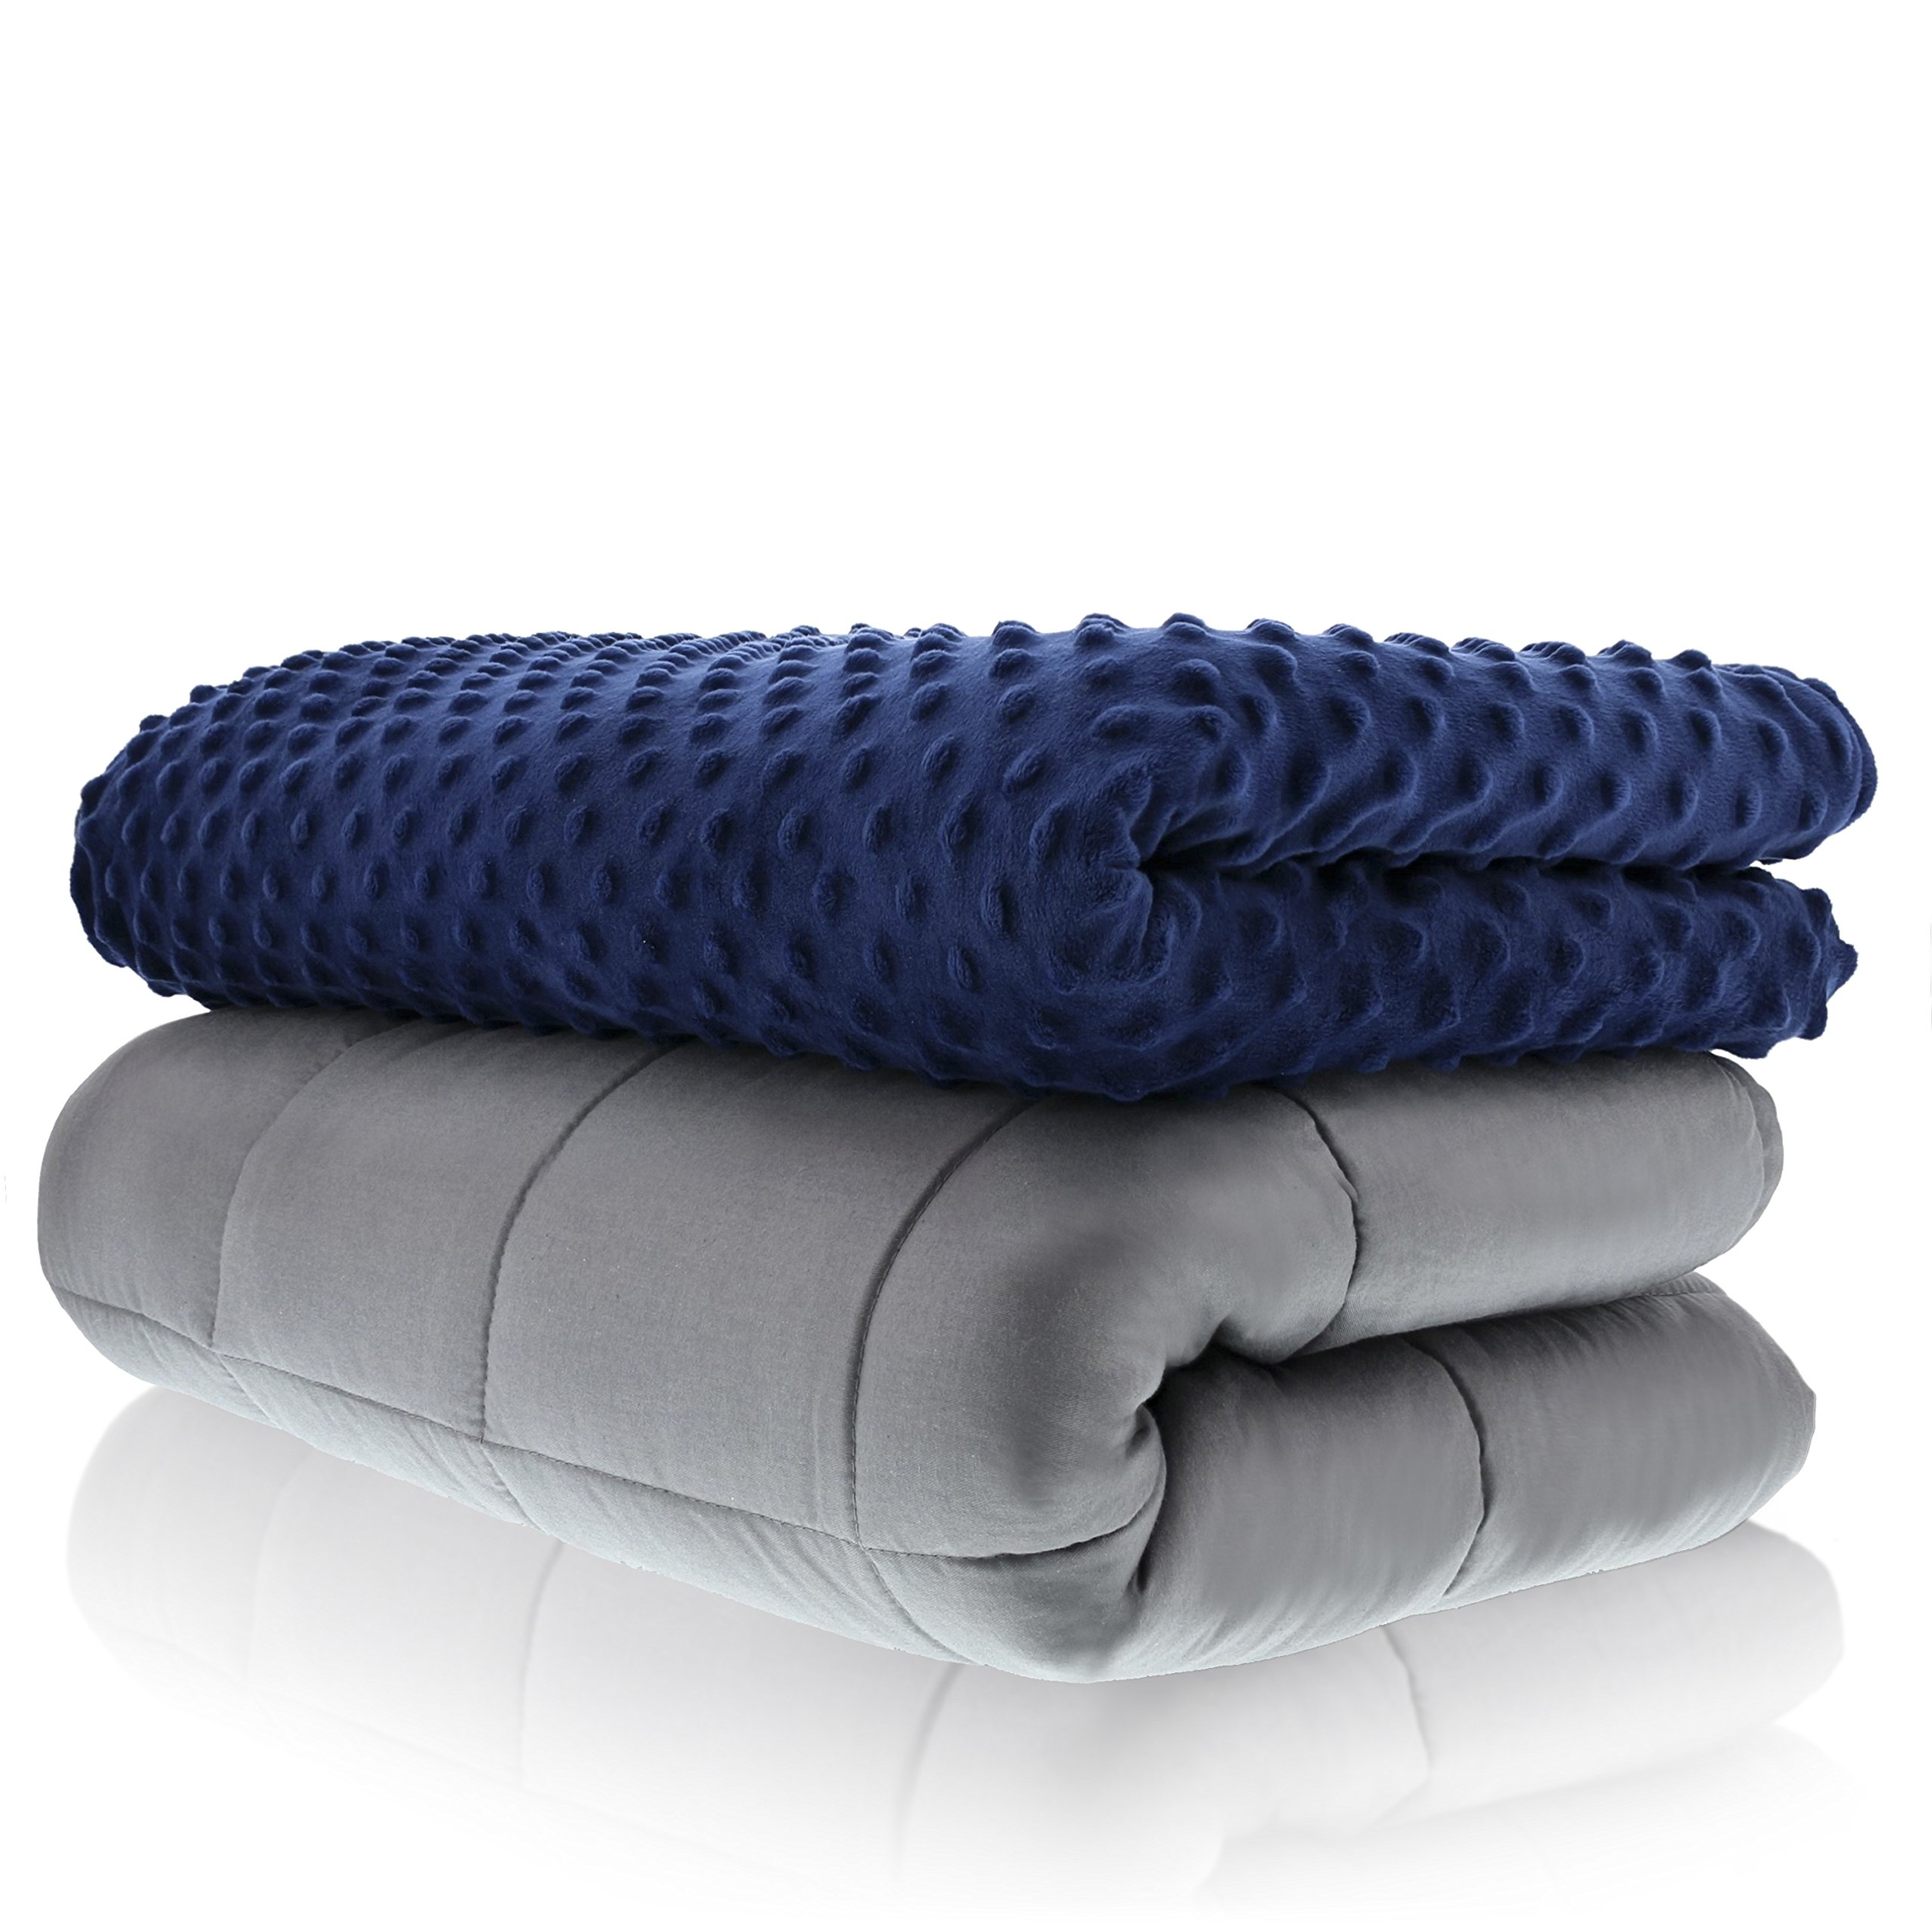 Sonno Zona Weighted Blanket Adult Size - for Natural Calm - Blankets Made from Relaxation Sleep Fabric (Navy, 48x72-15 LB)